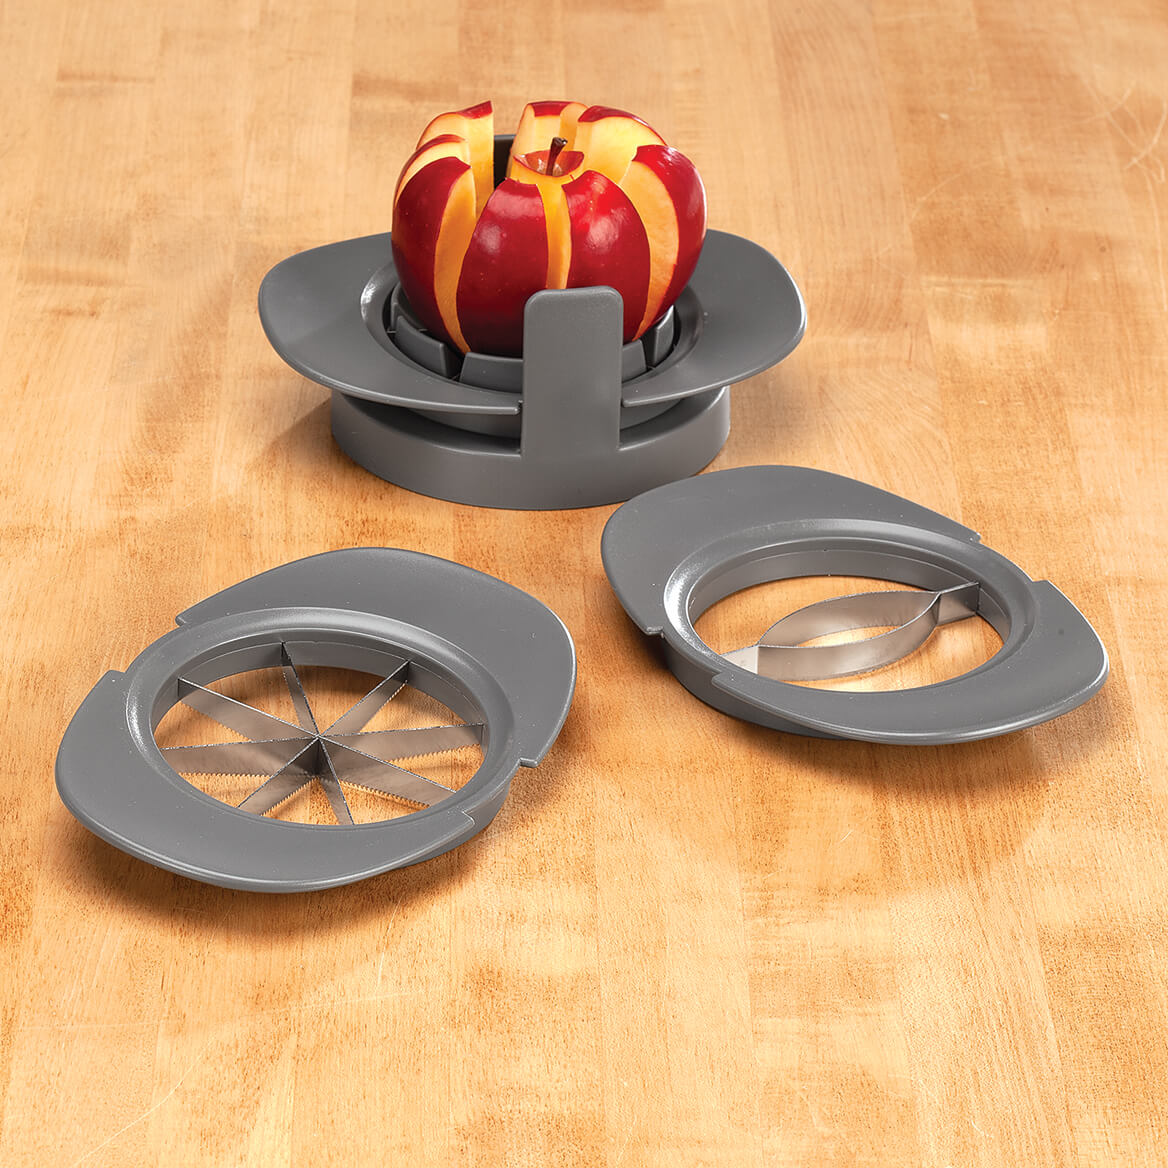 3-in-1 Multifunction Slicer by Home Marketplace-370763